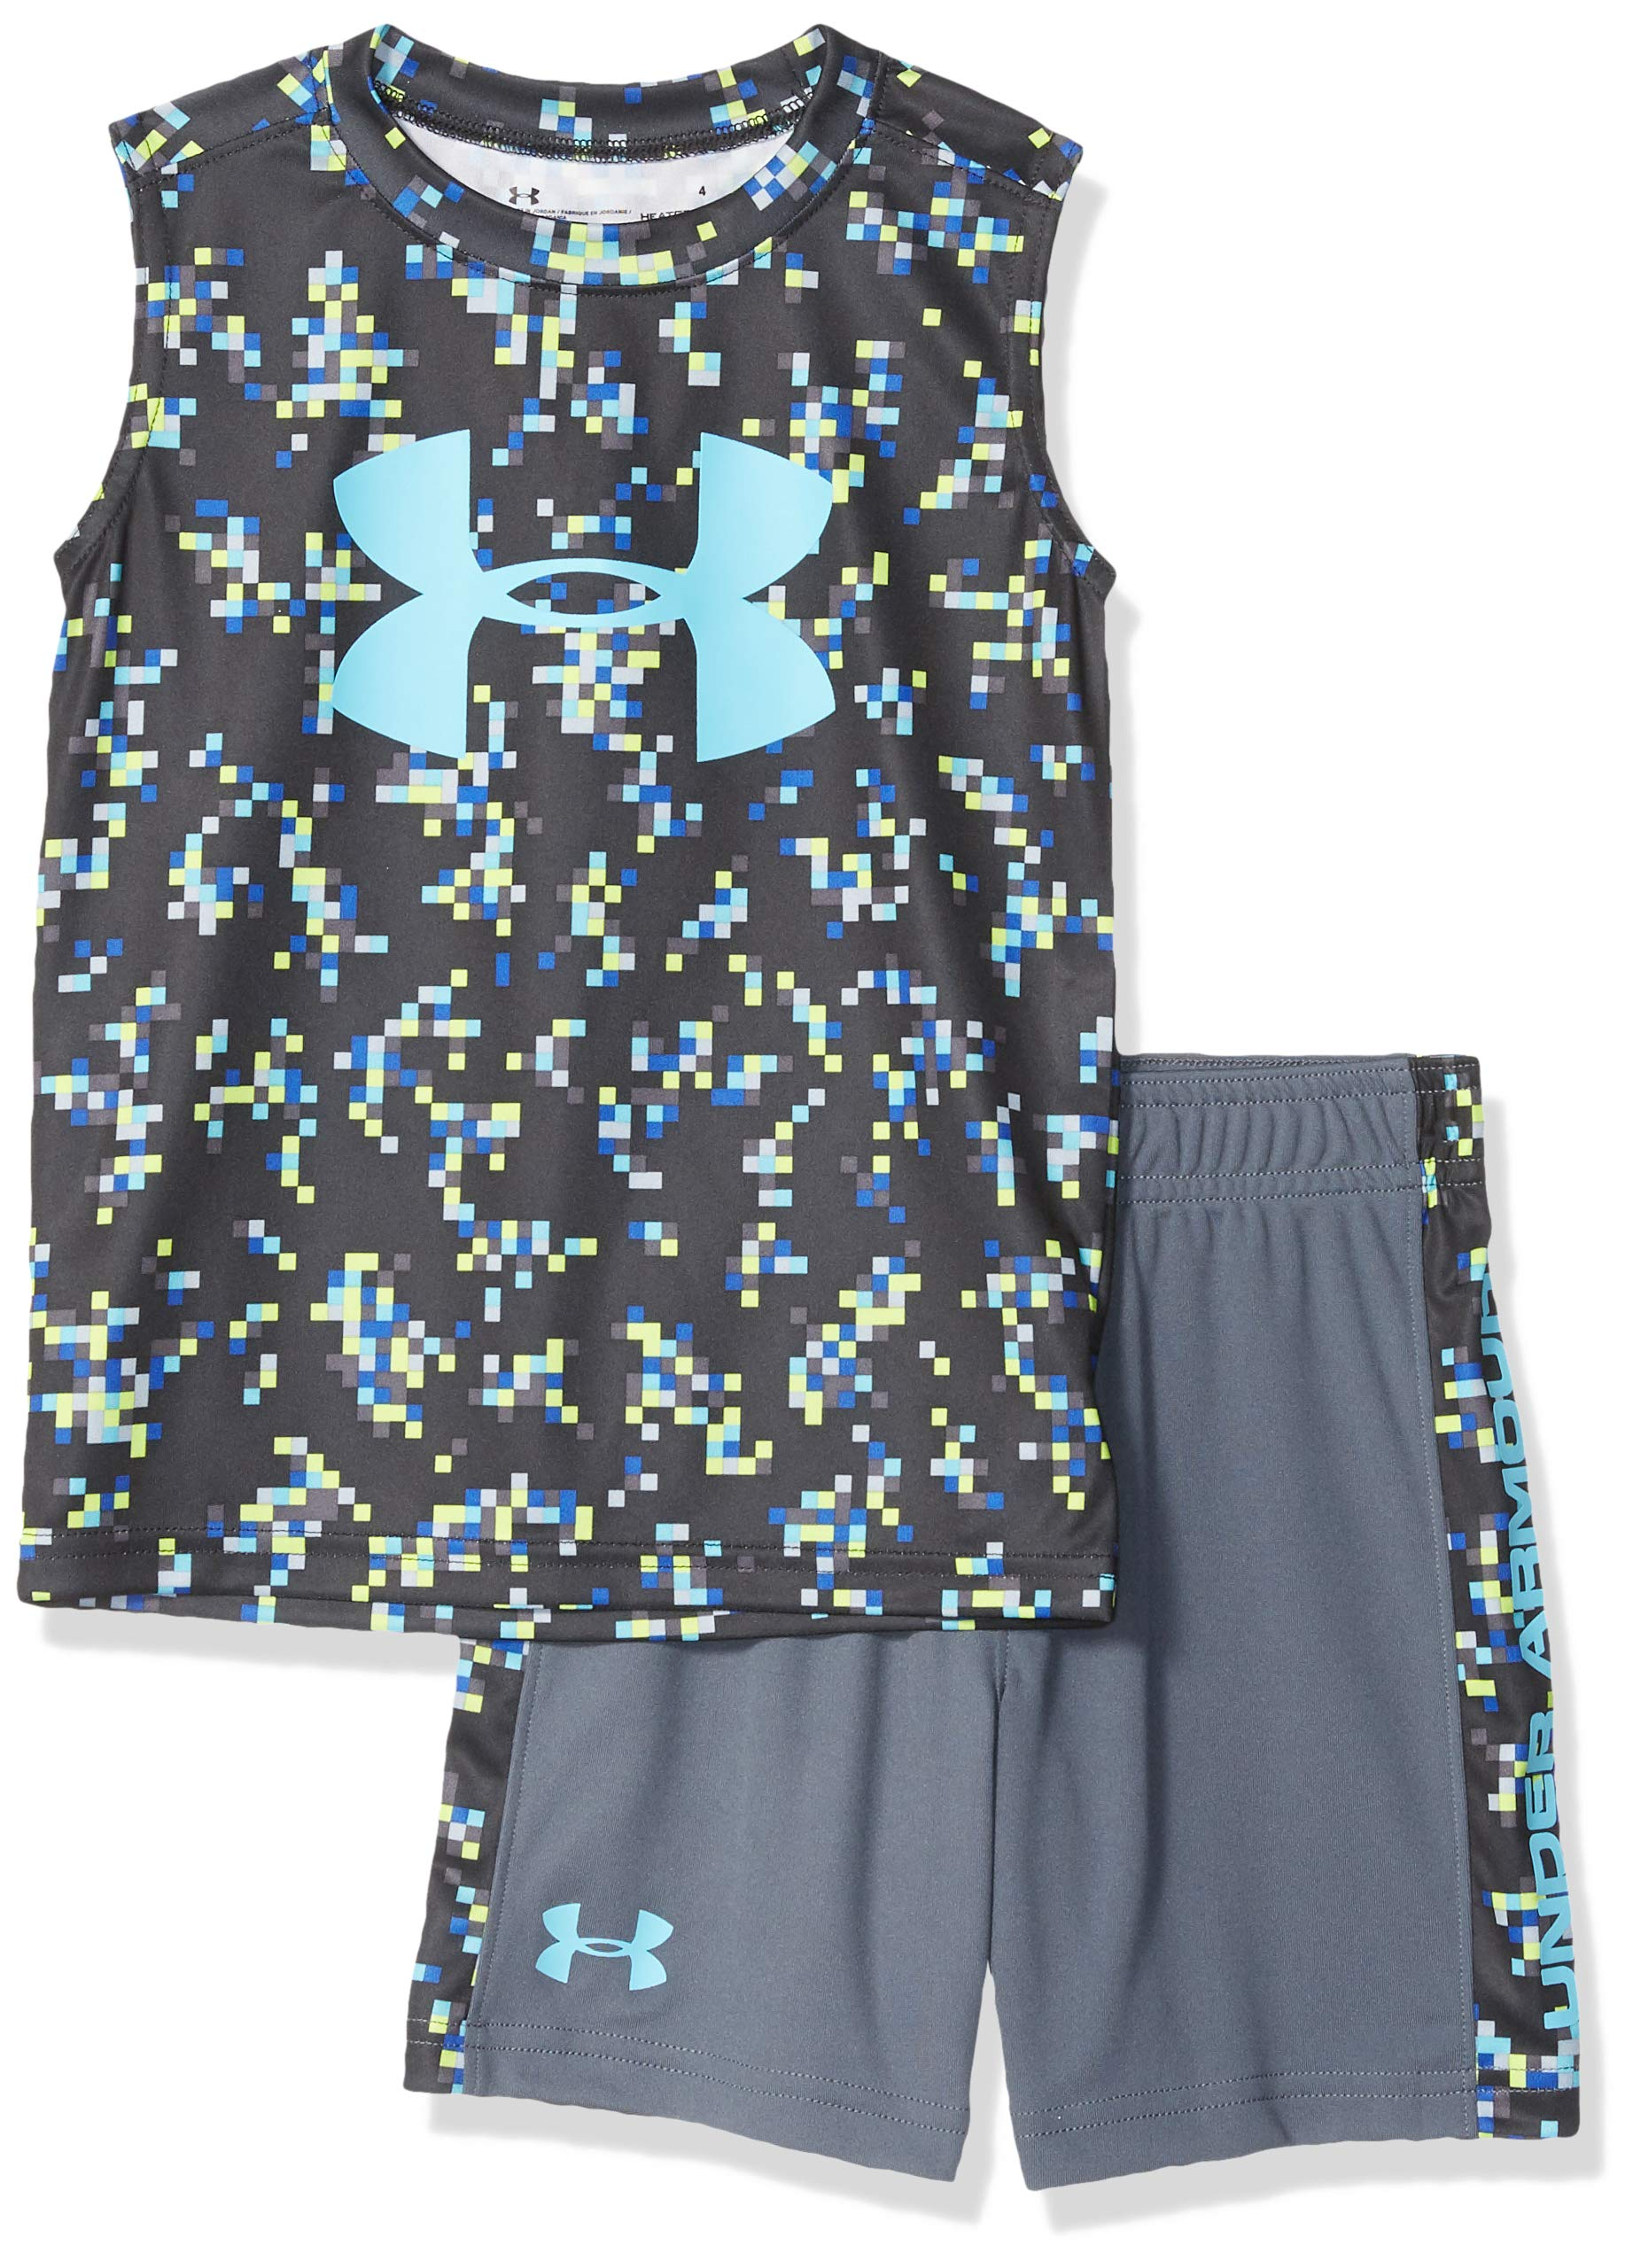 Under Armour Boys' Baby UA Muscle Tank and Short Set, Black-S192, 18M